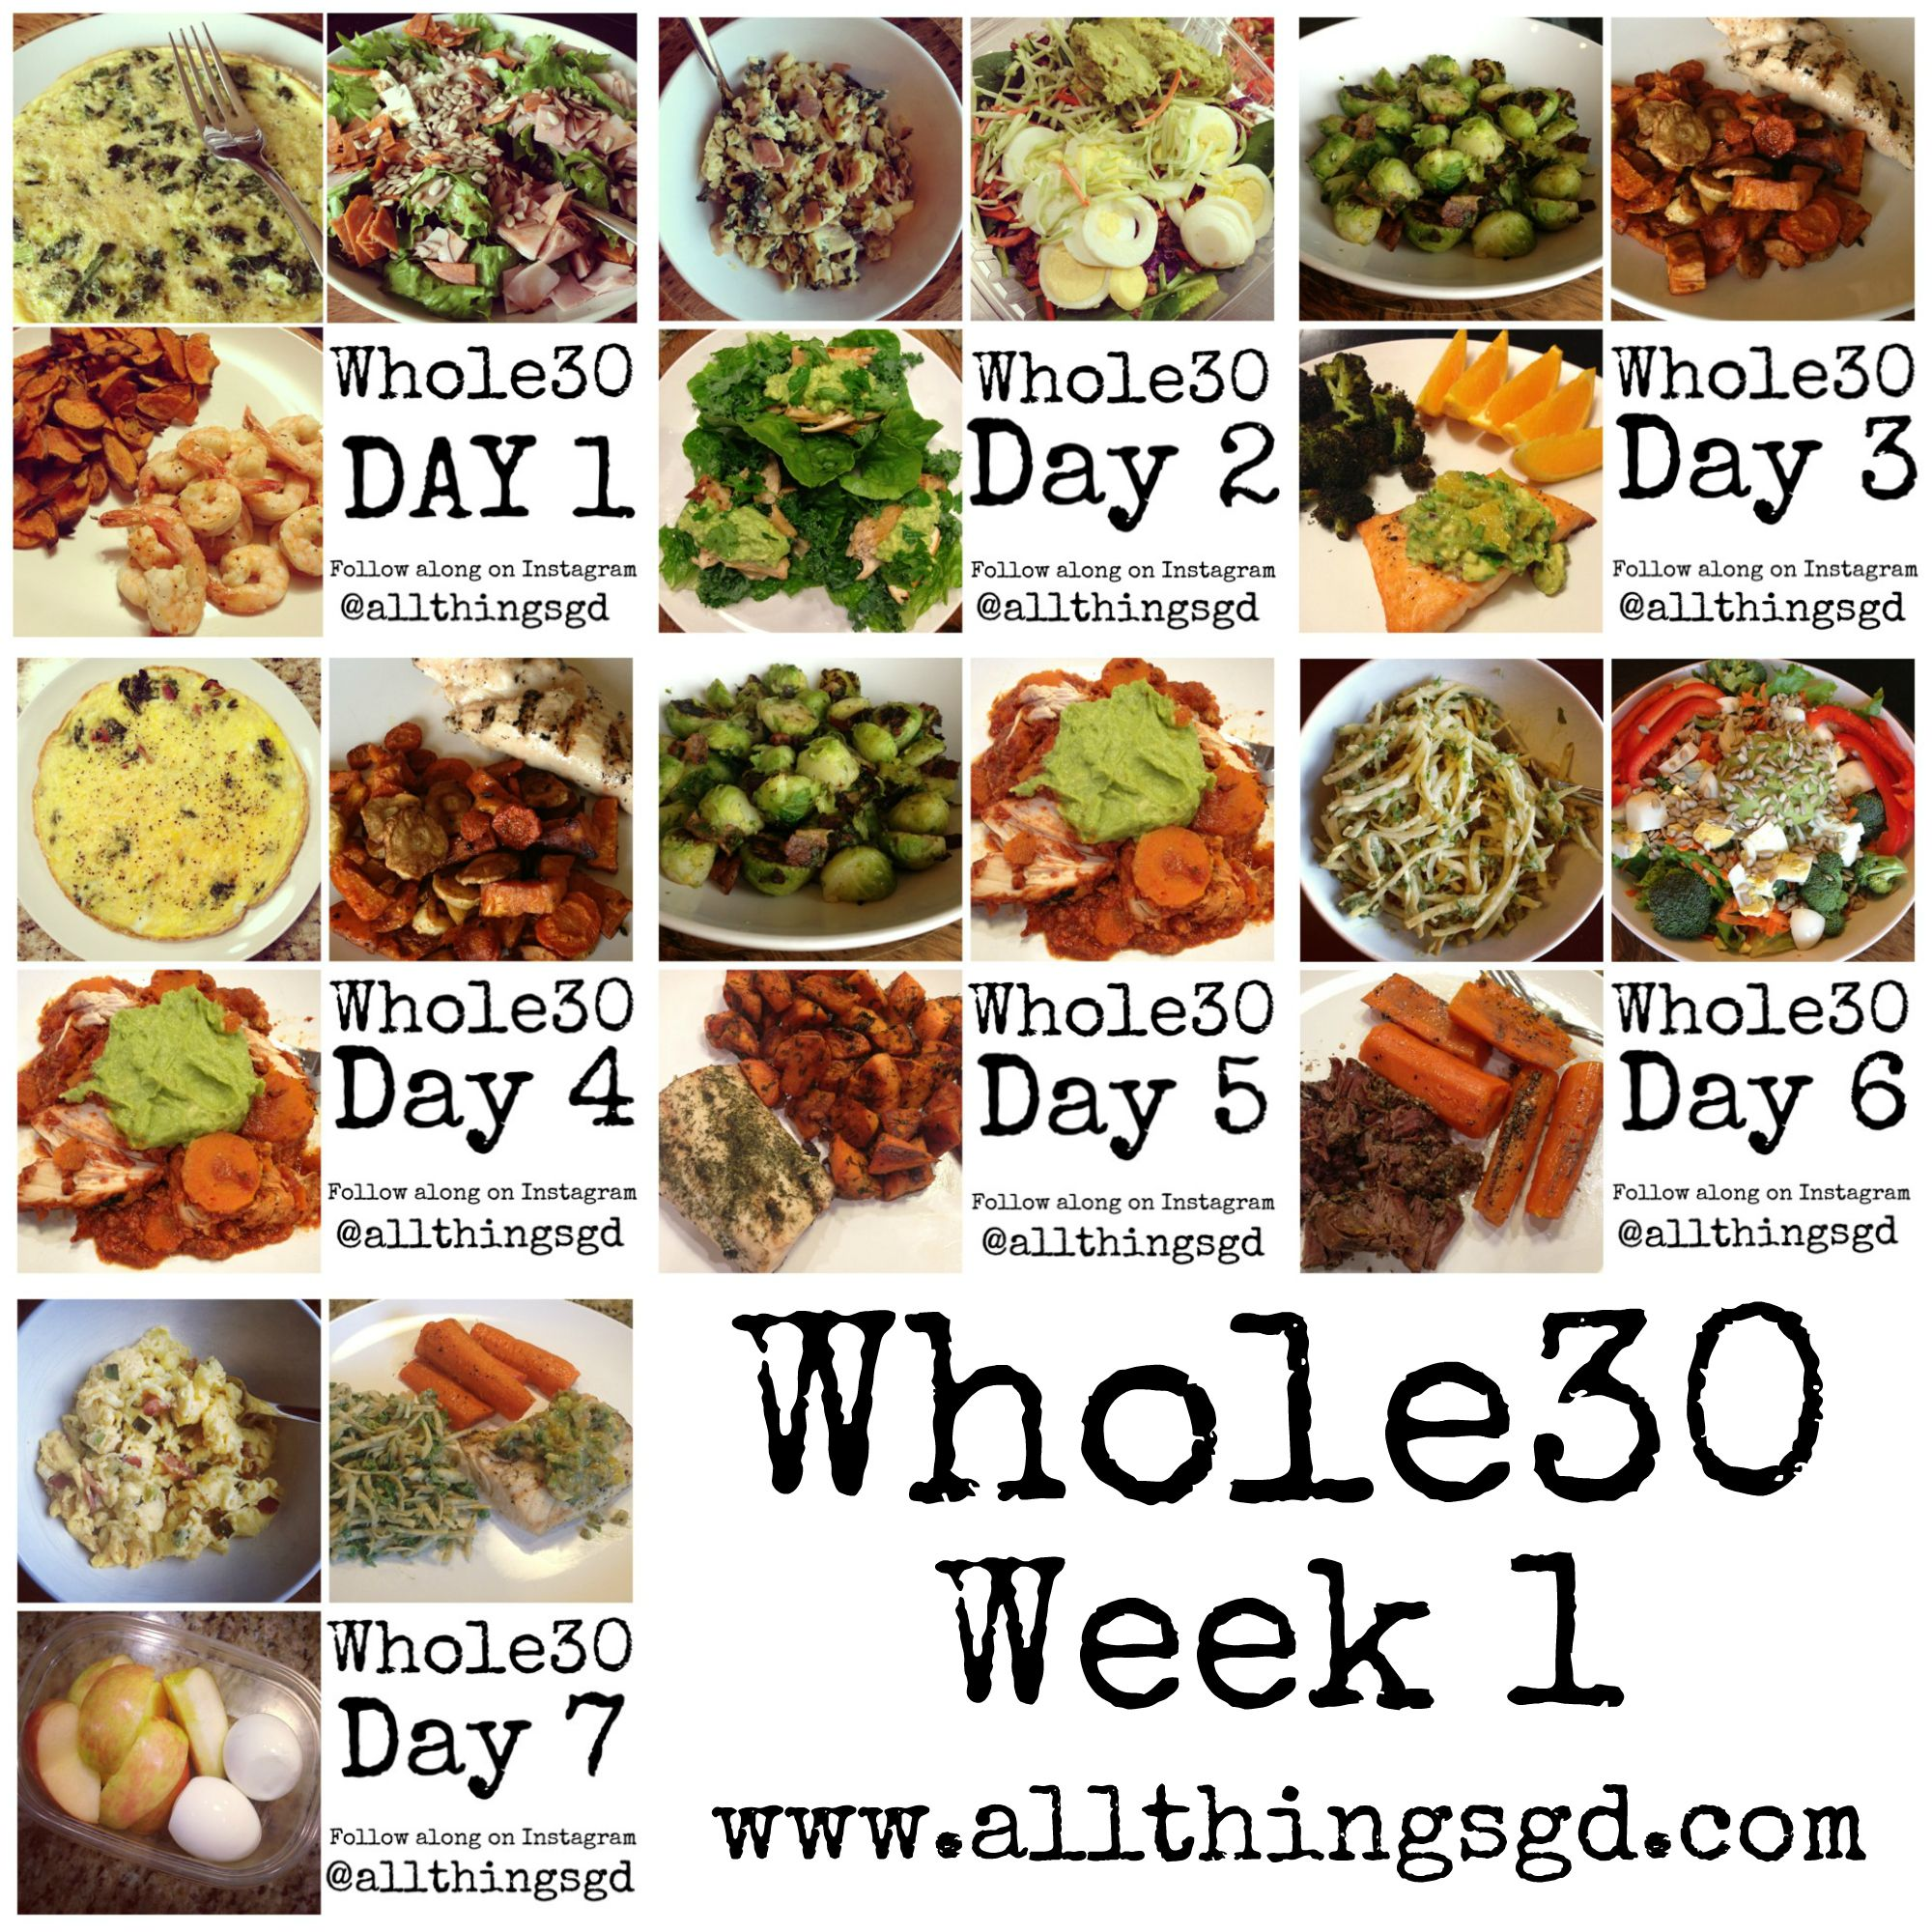 A week's worth of Whole30 meals and recipes www